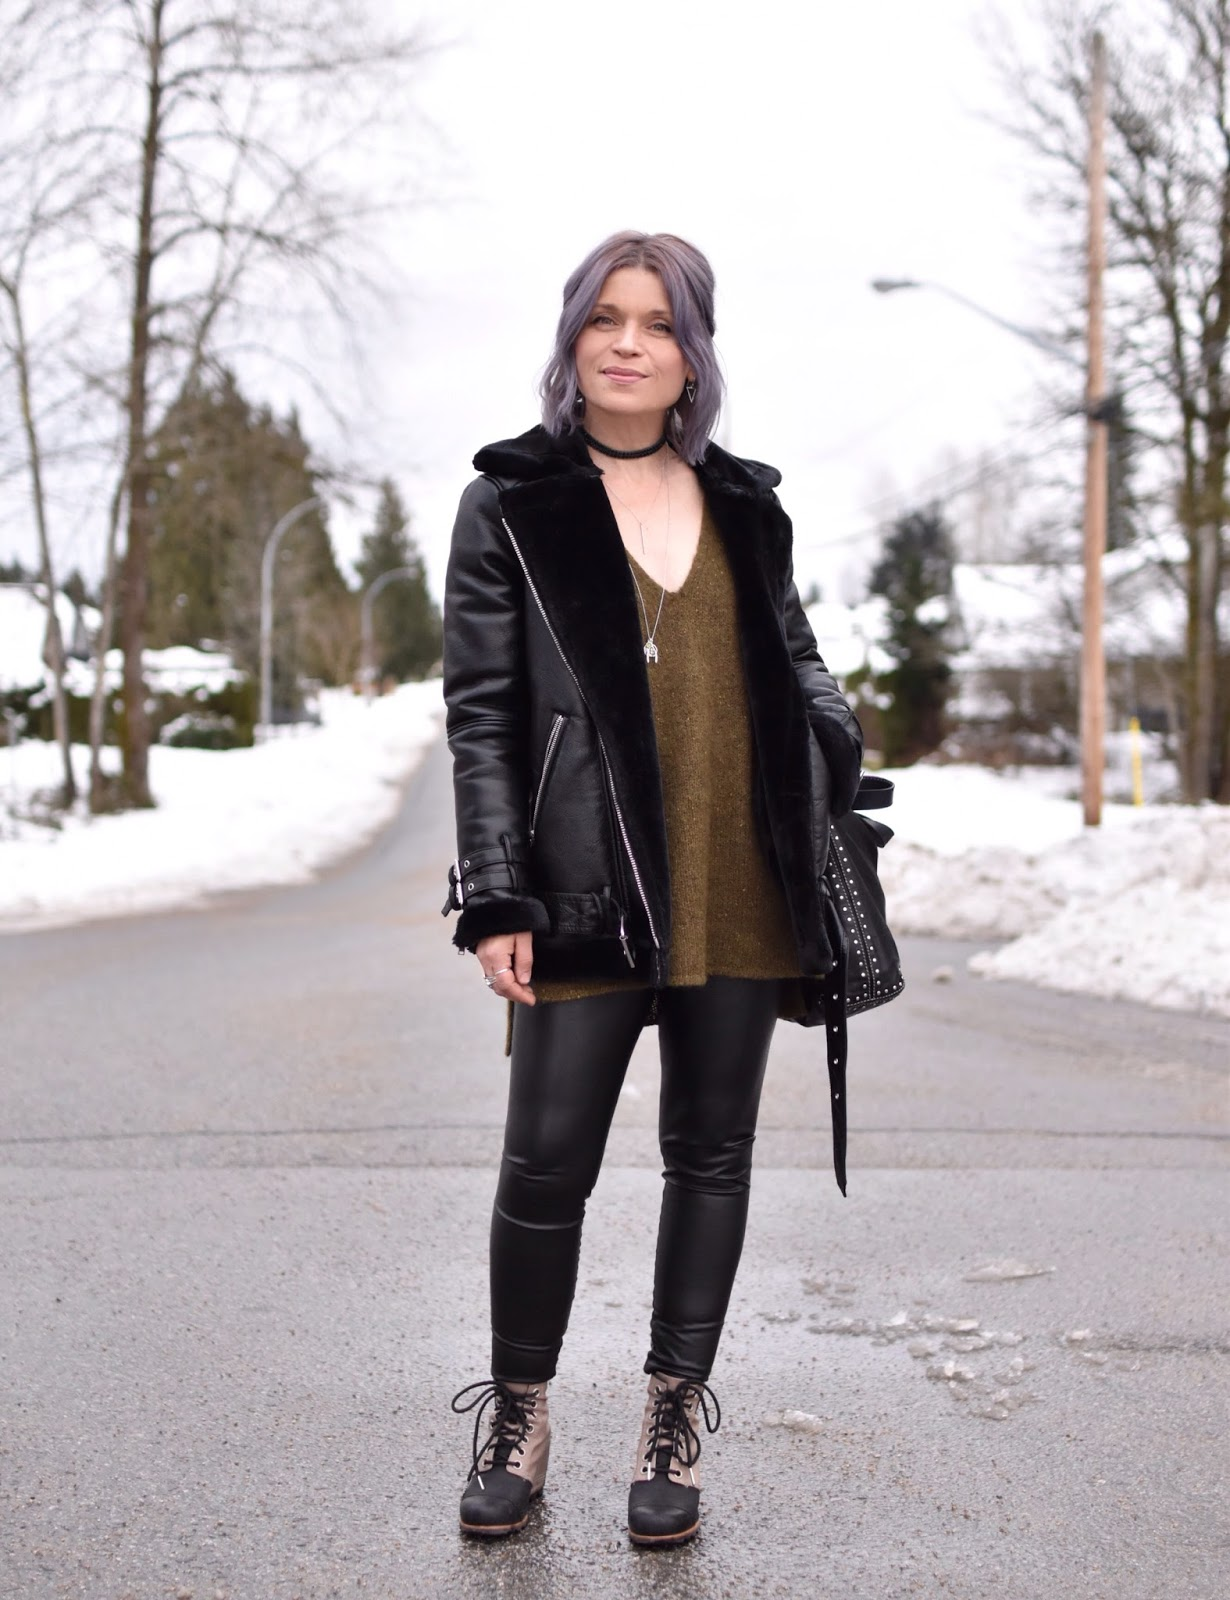 Monika Faulkner outfit inspiration - styling a tunic sweater with faux-leather leggings, wedge booties, and an aviator jacket